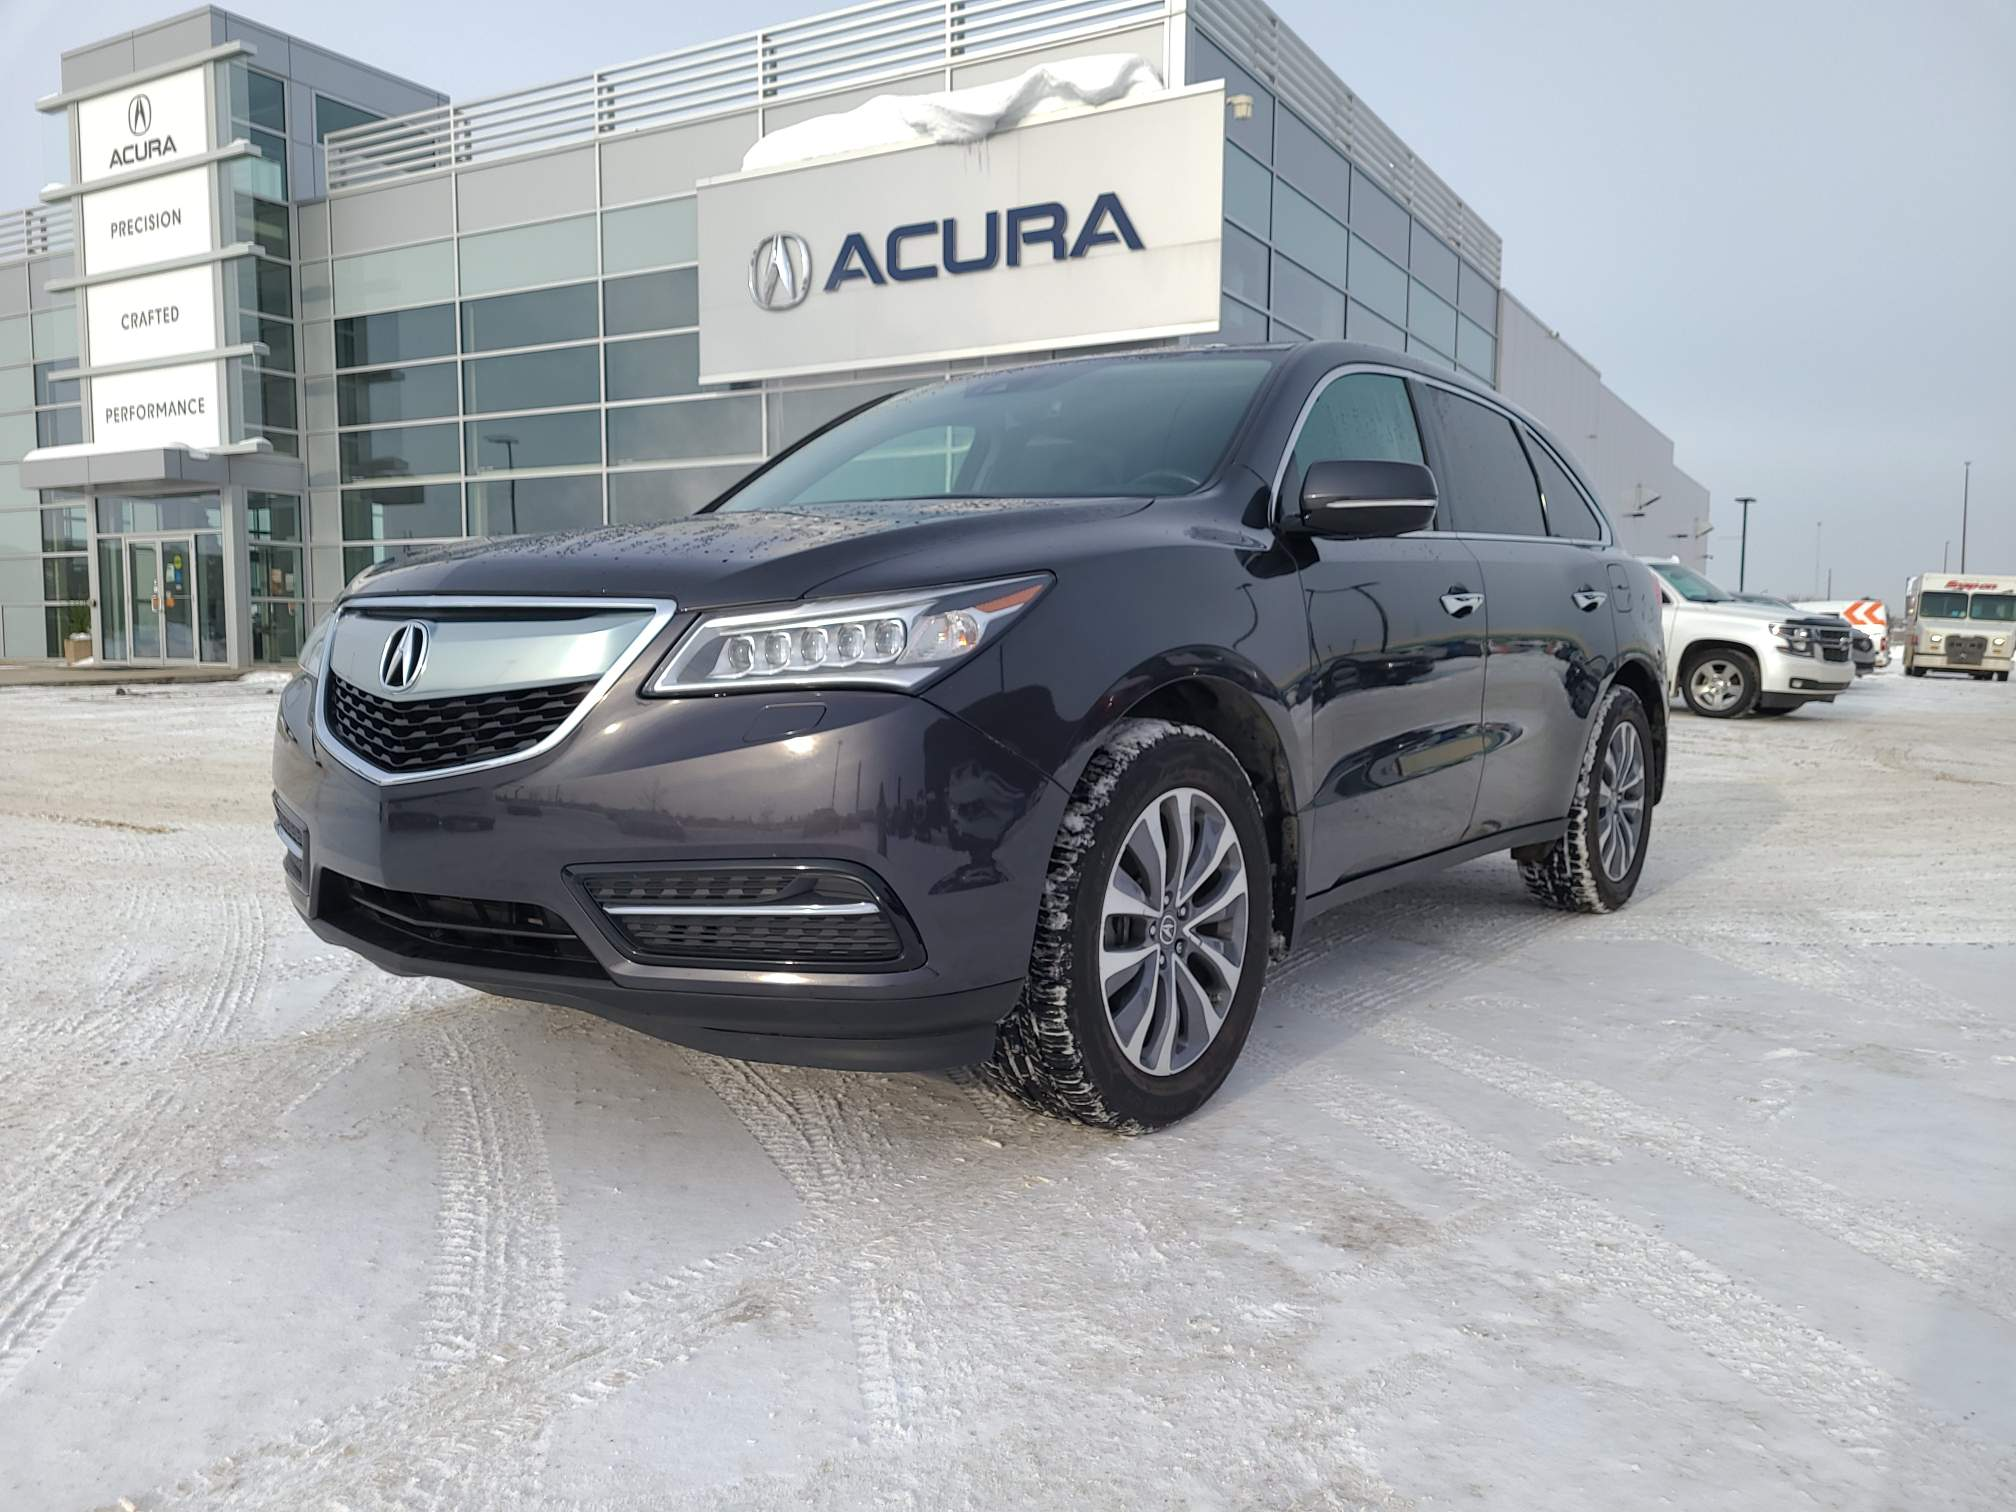 used 2016 Acura MDX car, priced at $31,962